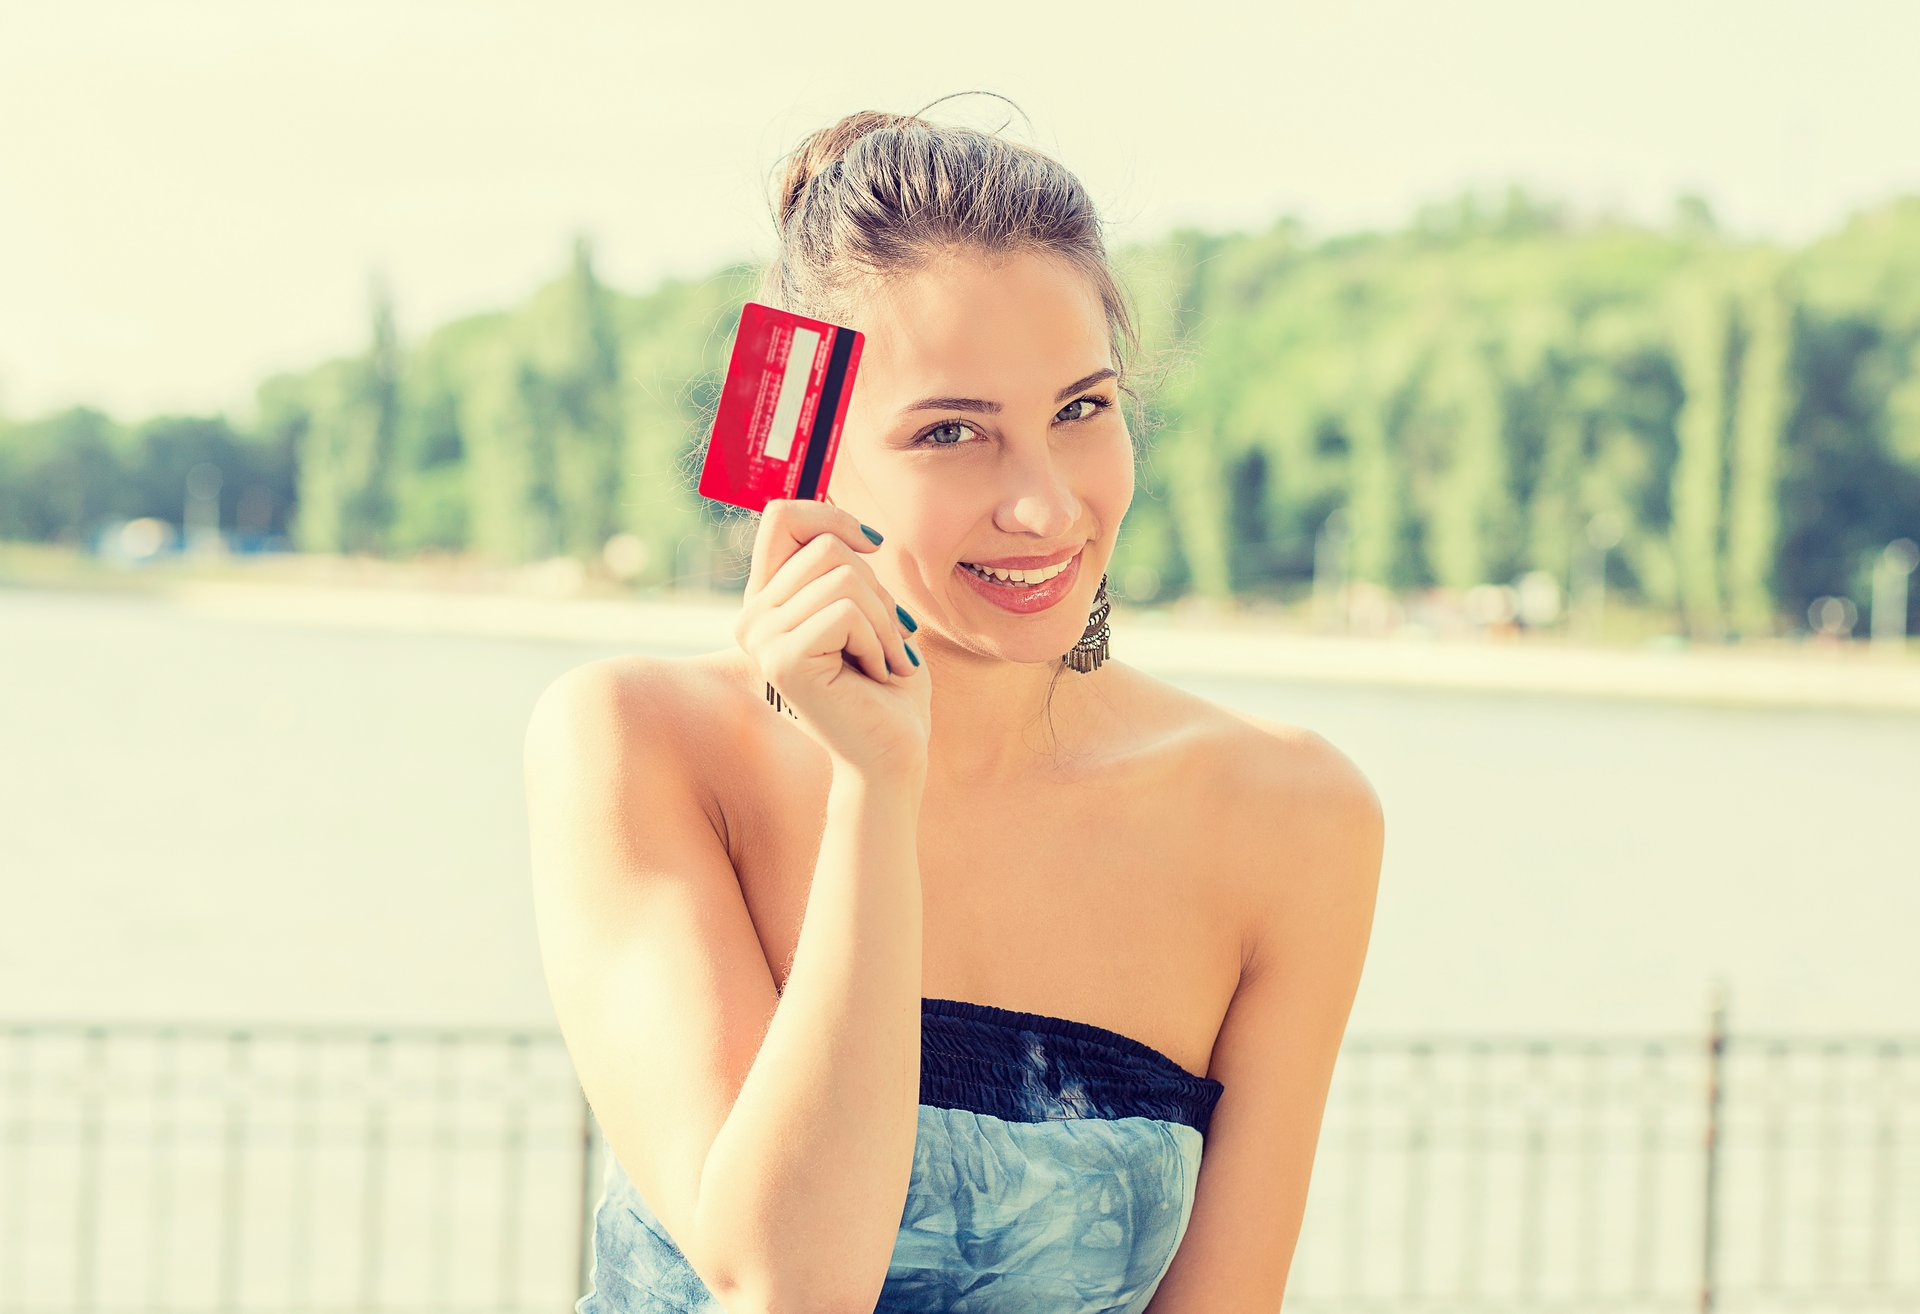 A woman holds up her credit card